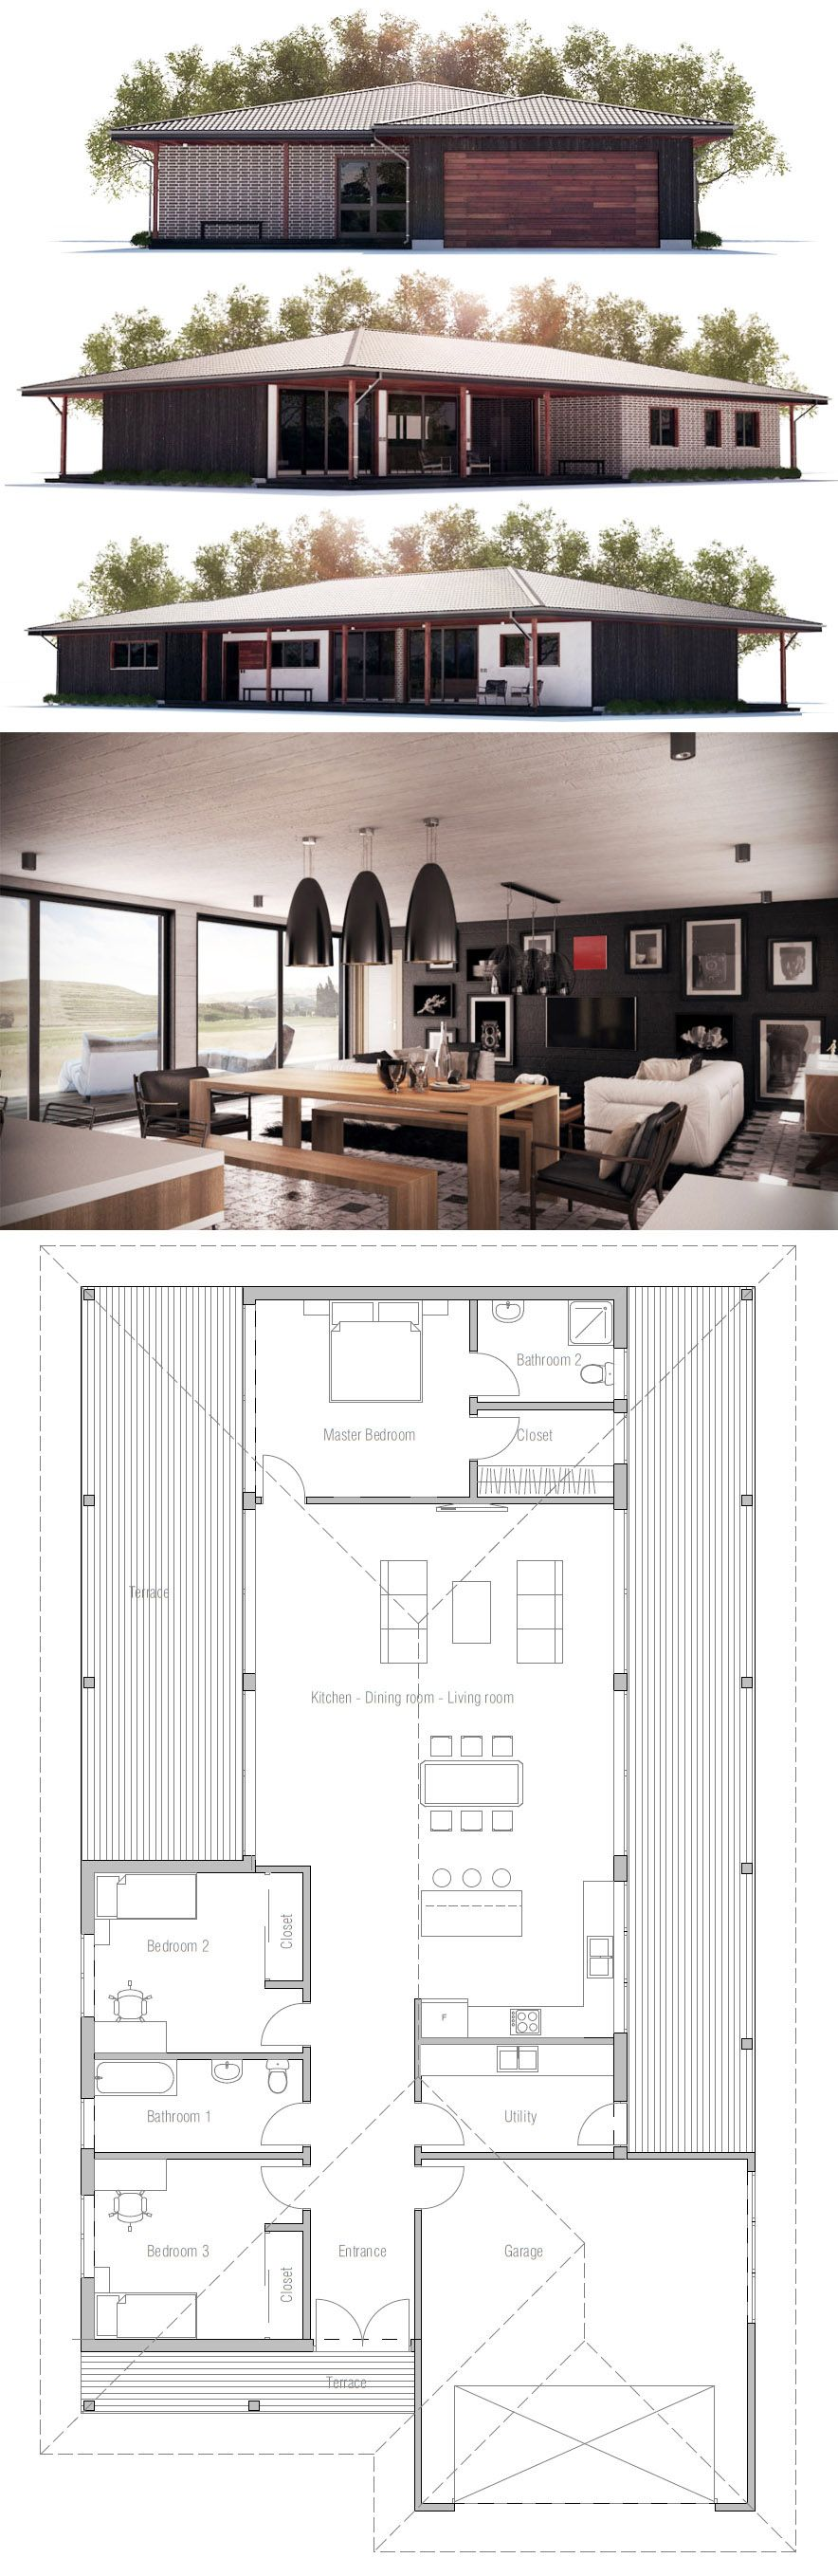 House Designs Home Plans Home Designs Adhouseplans Homeplans Houseplans Architecture Architecture House Small House Plans Bungalow House Plans